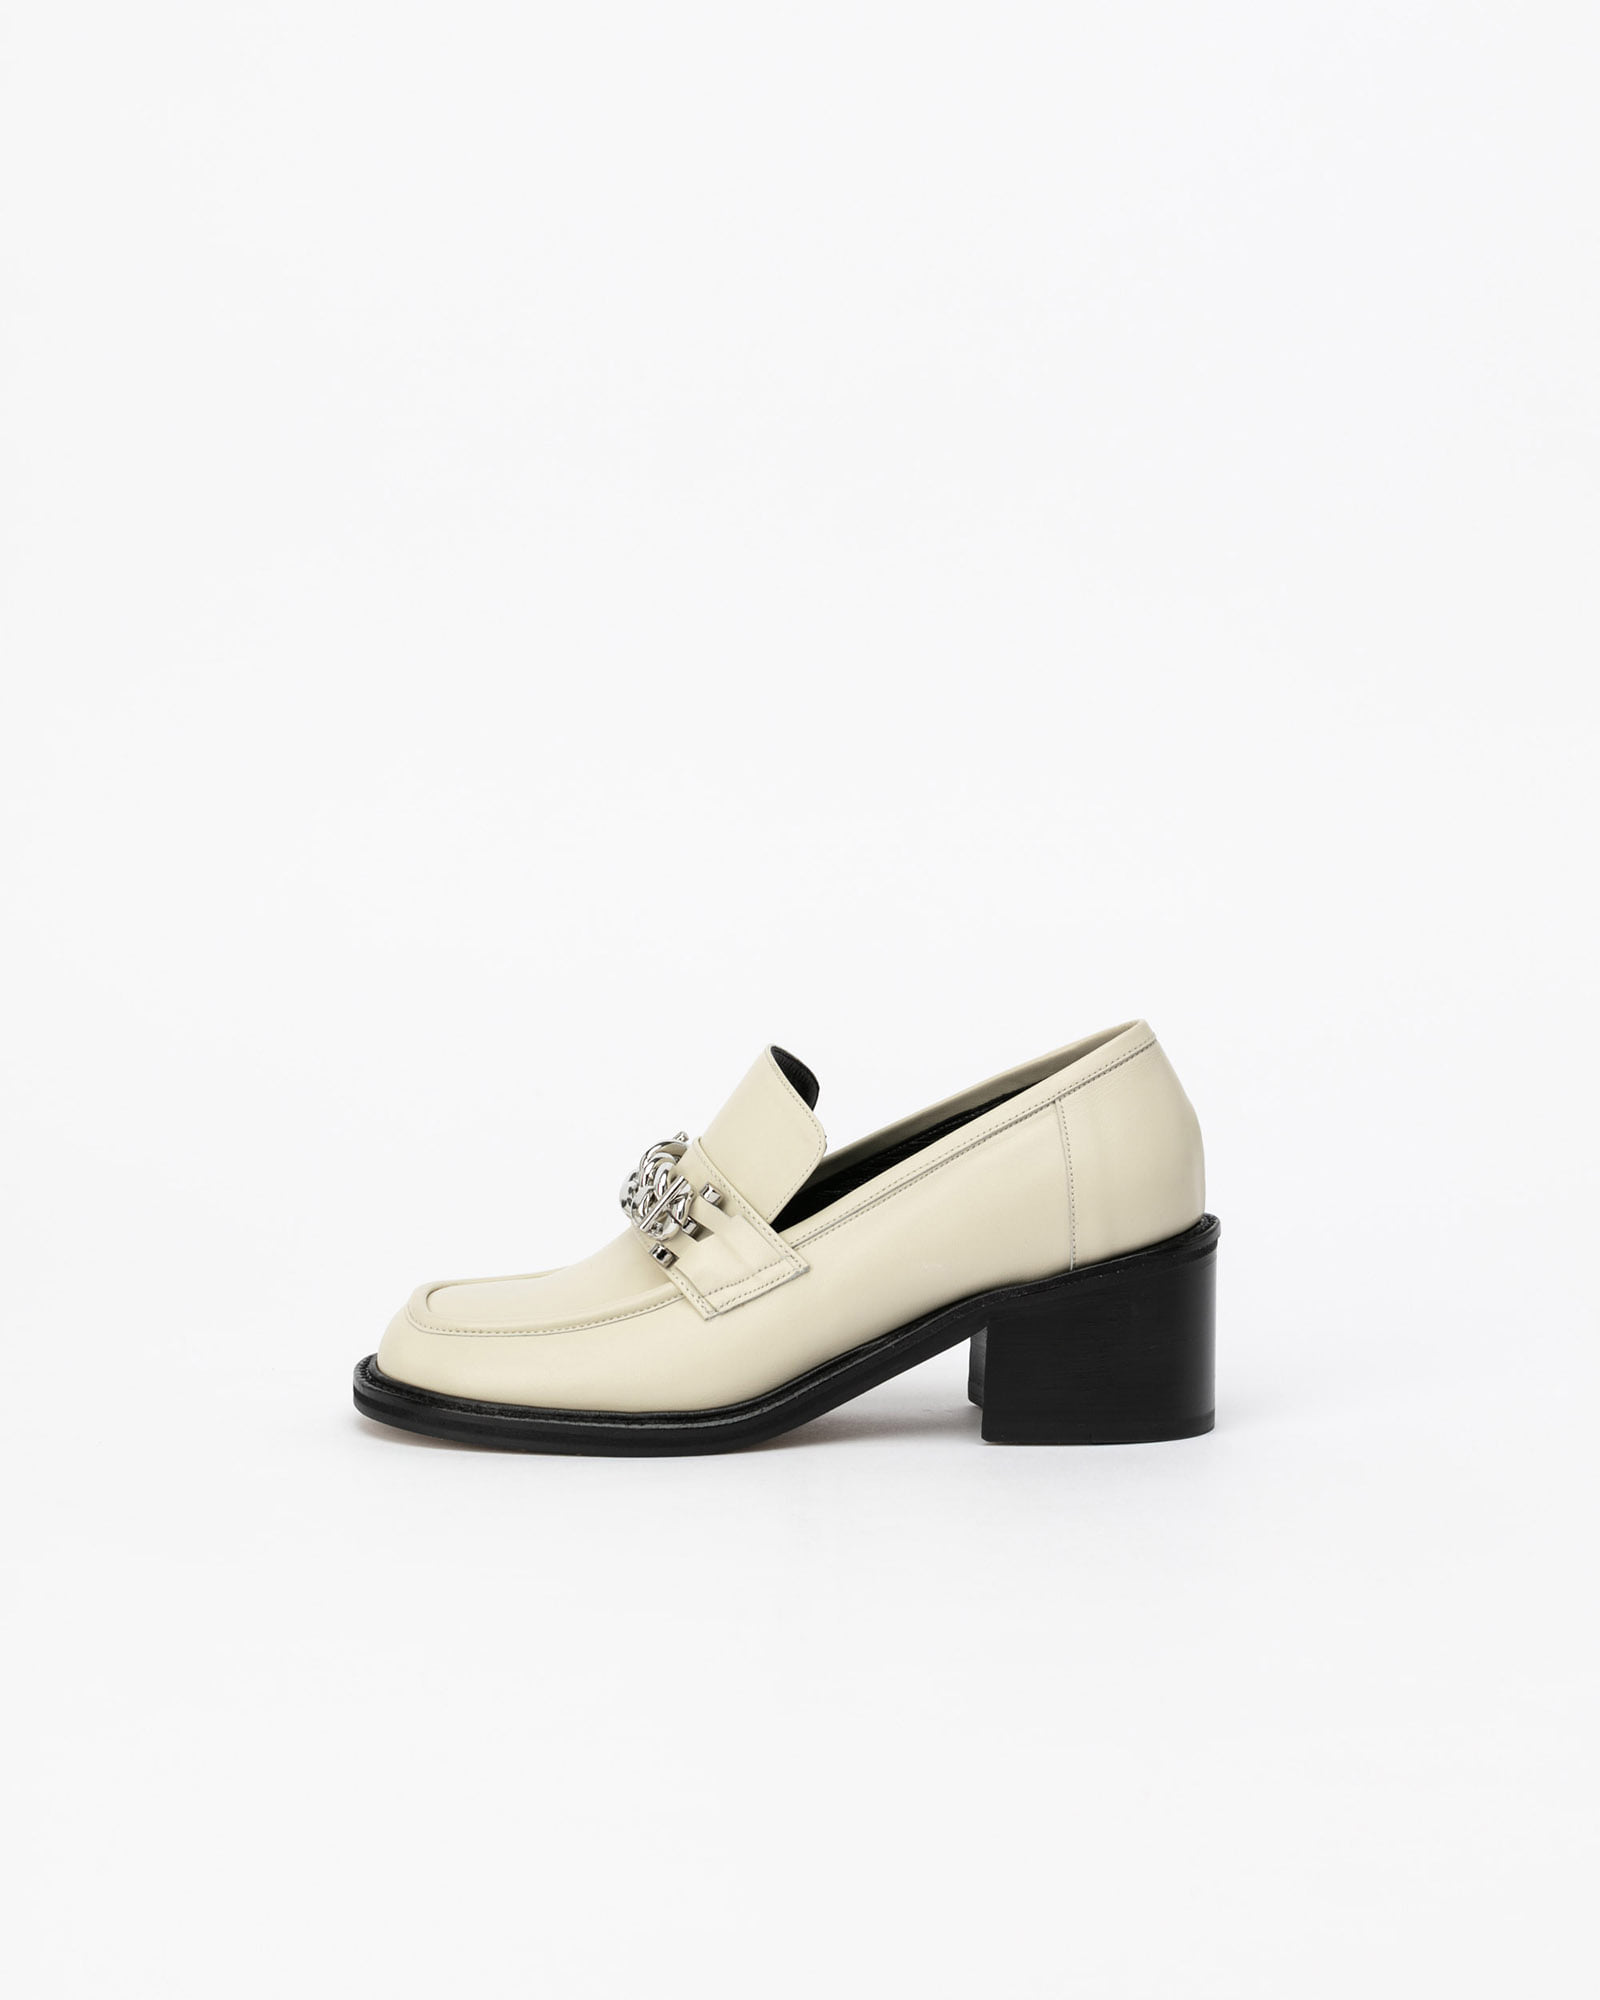 Gutissimo Loafers in Ecru Ivory